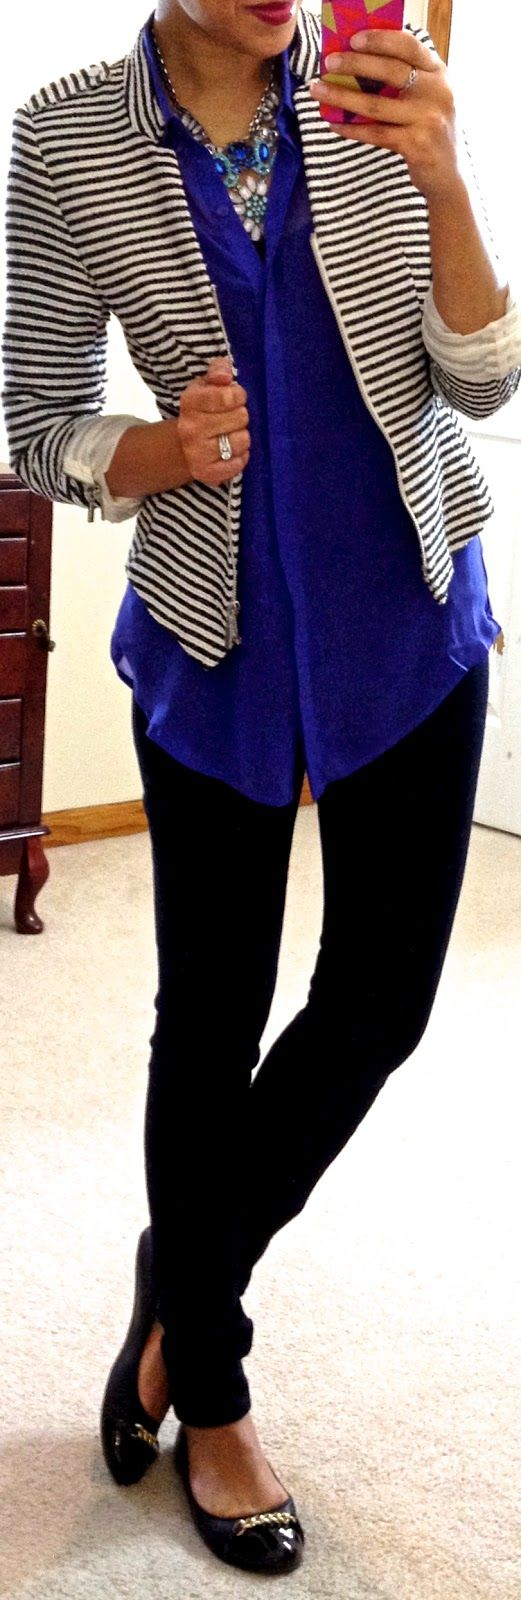 Blue button up, black and white striped blazer, black skinny jeans, and black flats